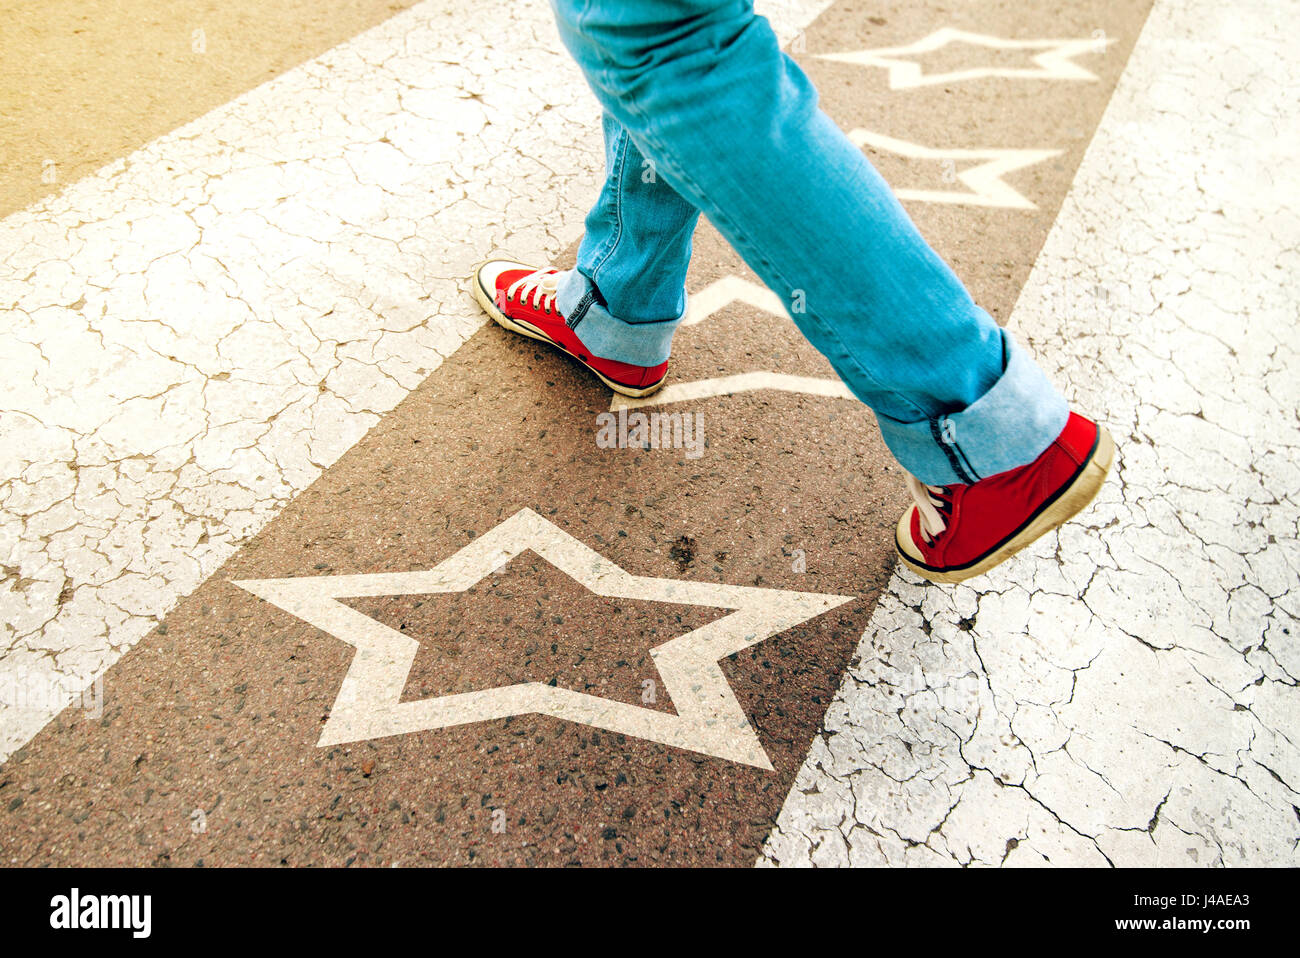 Sneakers on the road with star shape imprint - talent, vip, prize and award concept - Stock Image